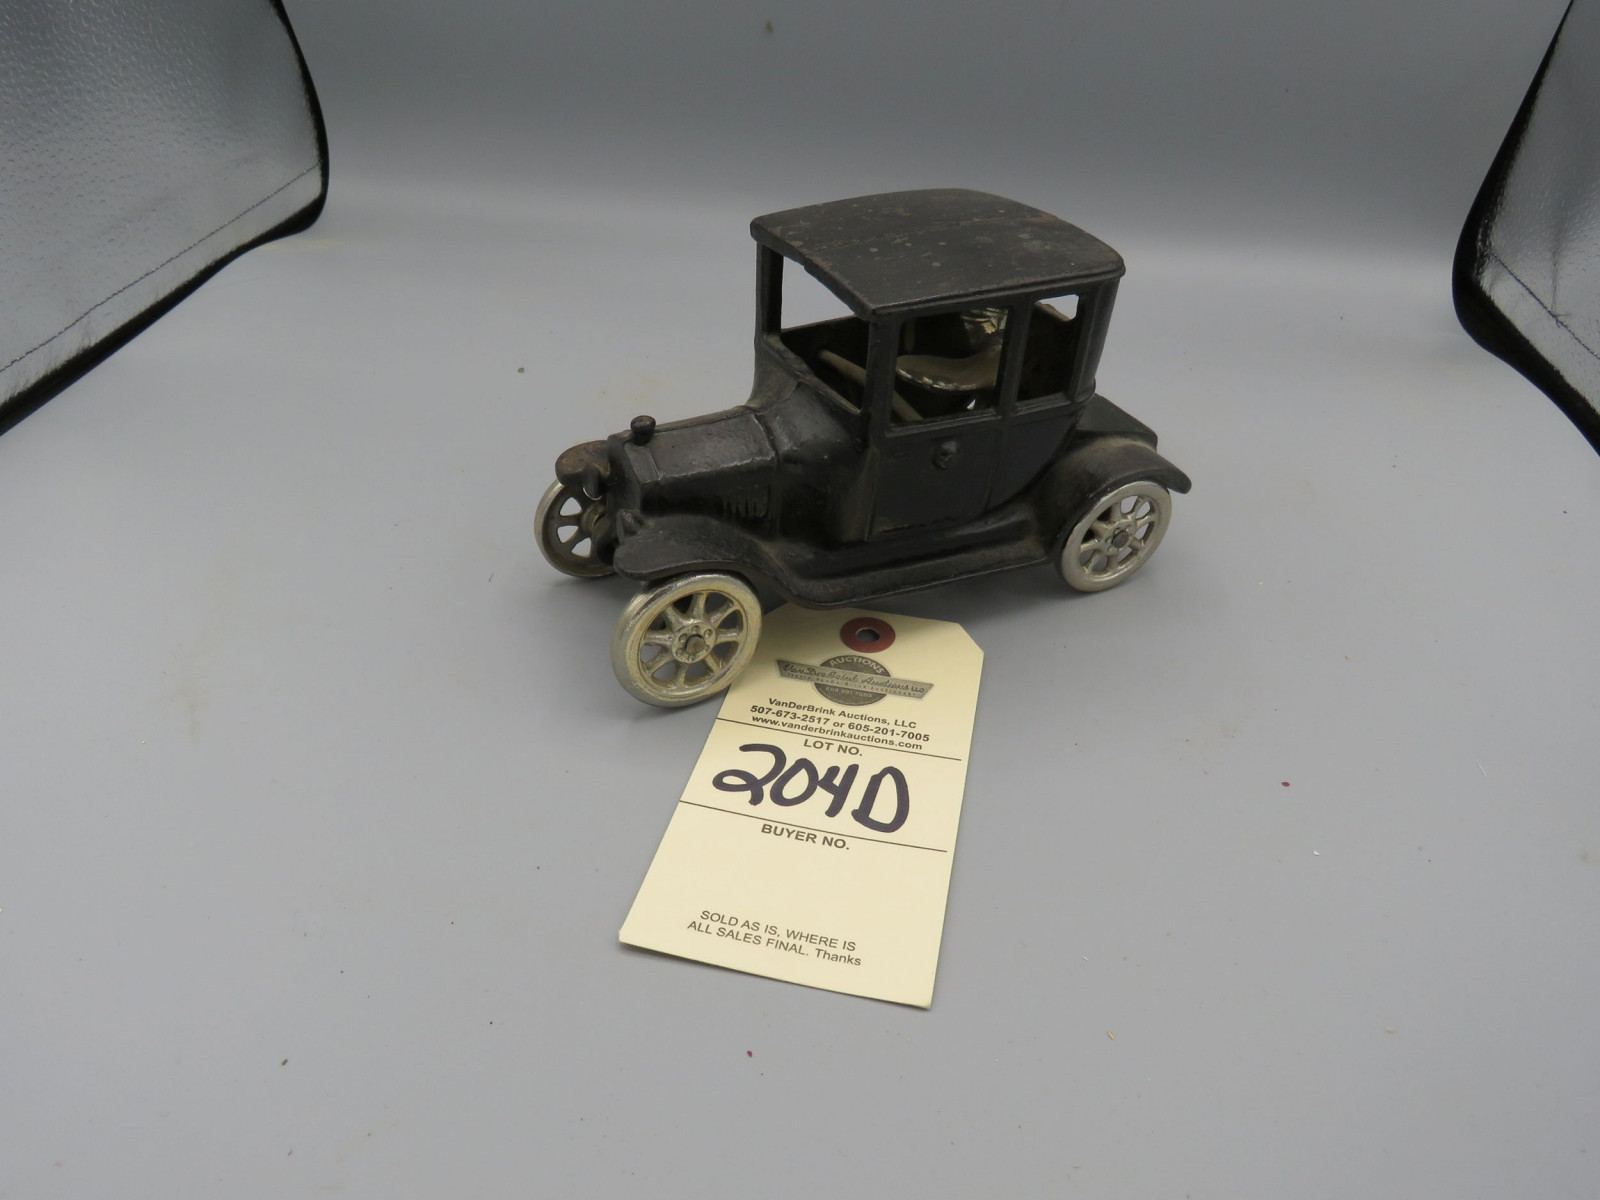 Arcade Cast Iron Ford Model T coupe @1923 Approx. 5 inches - Image 1